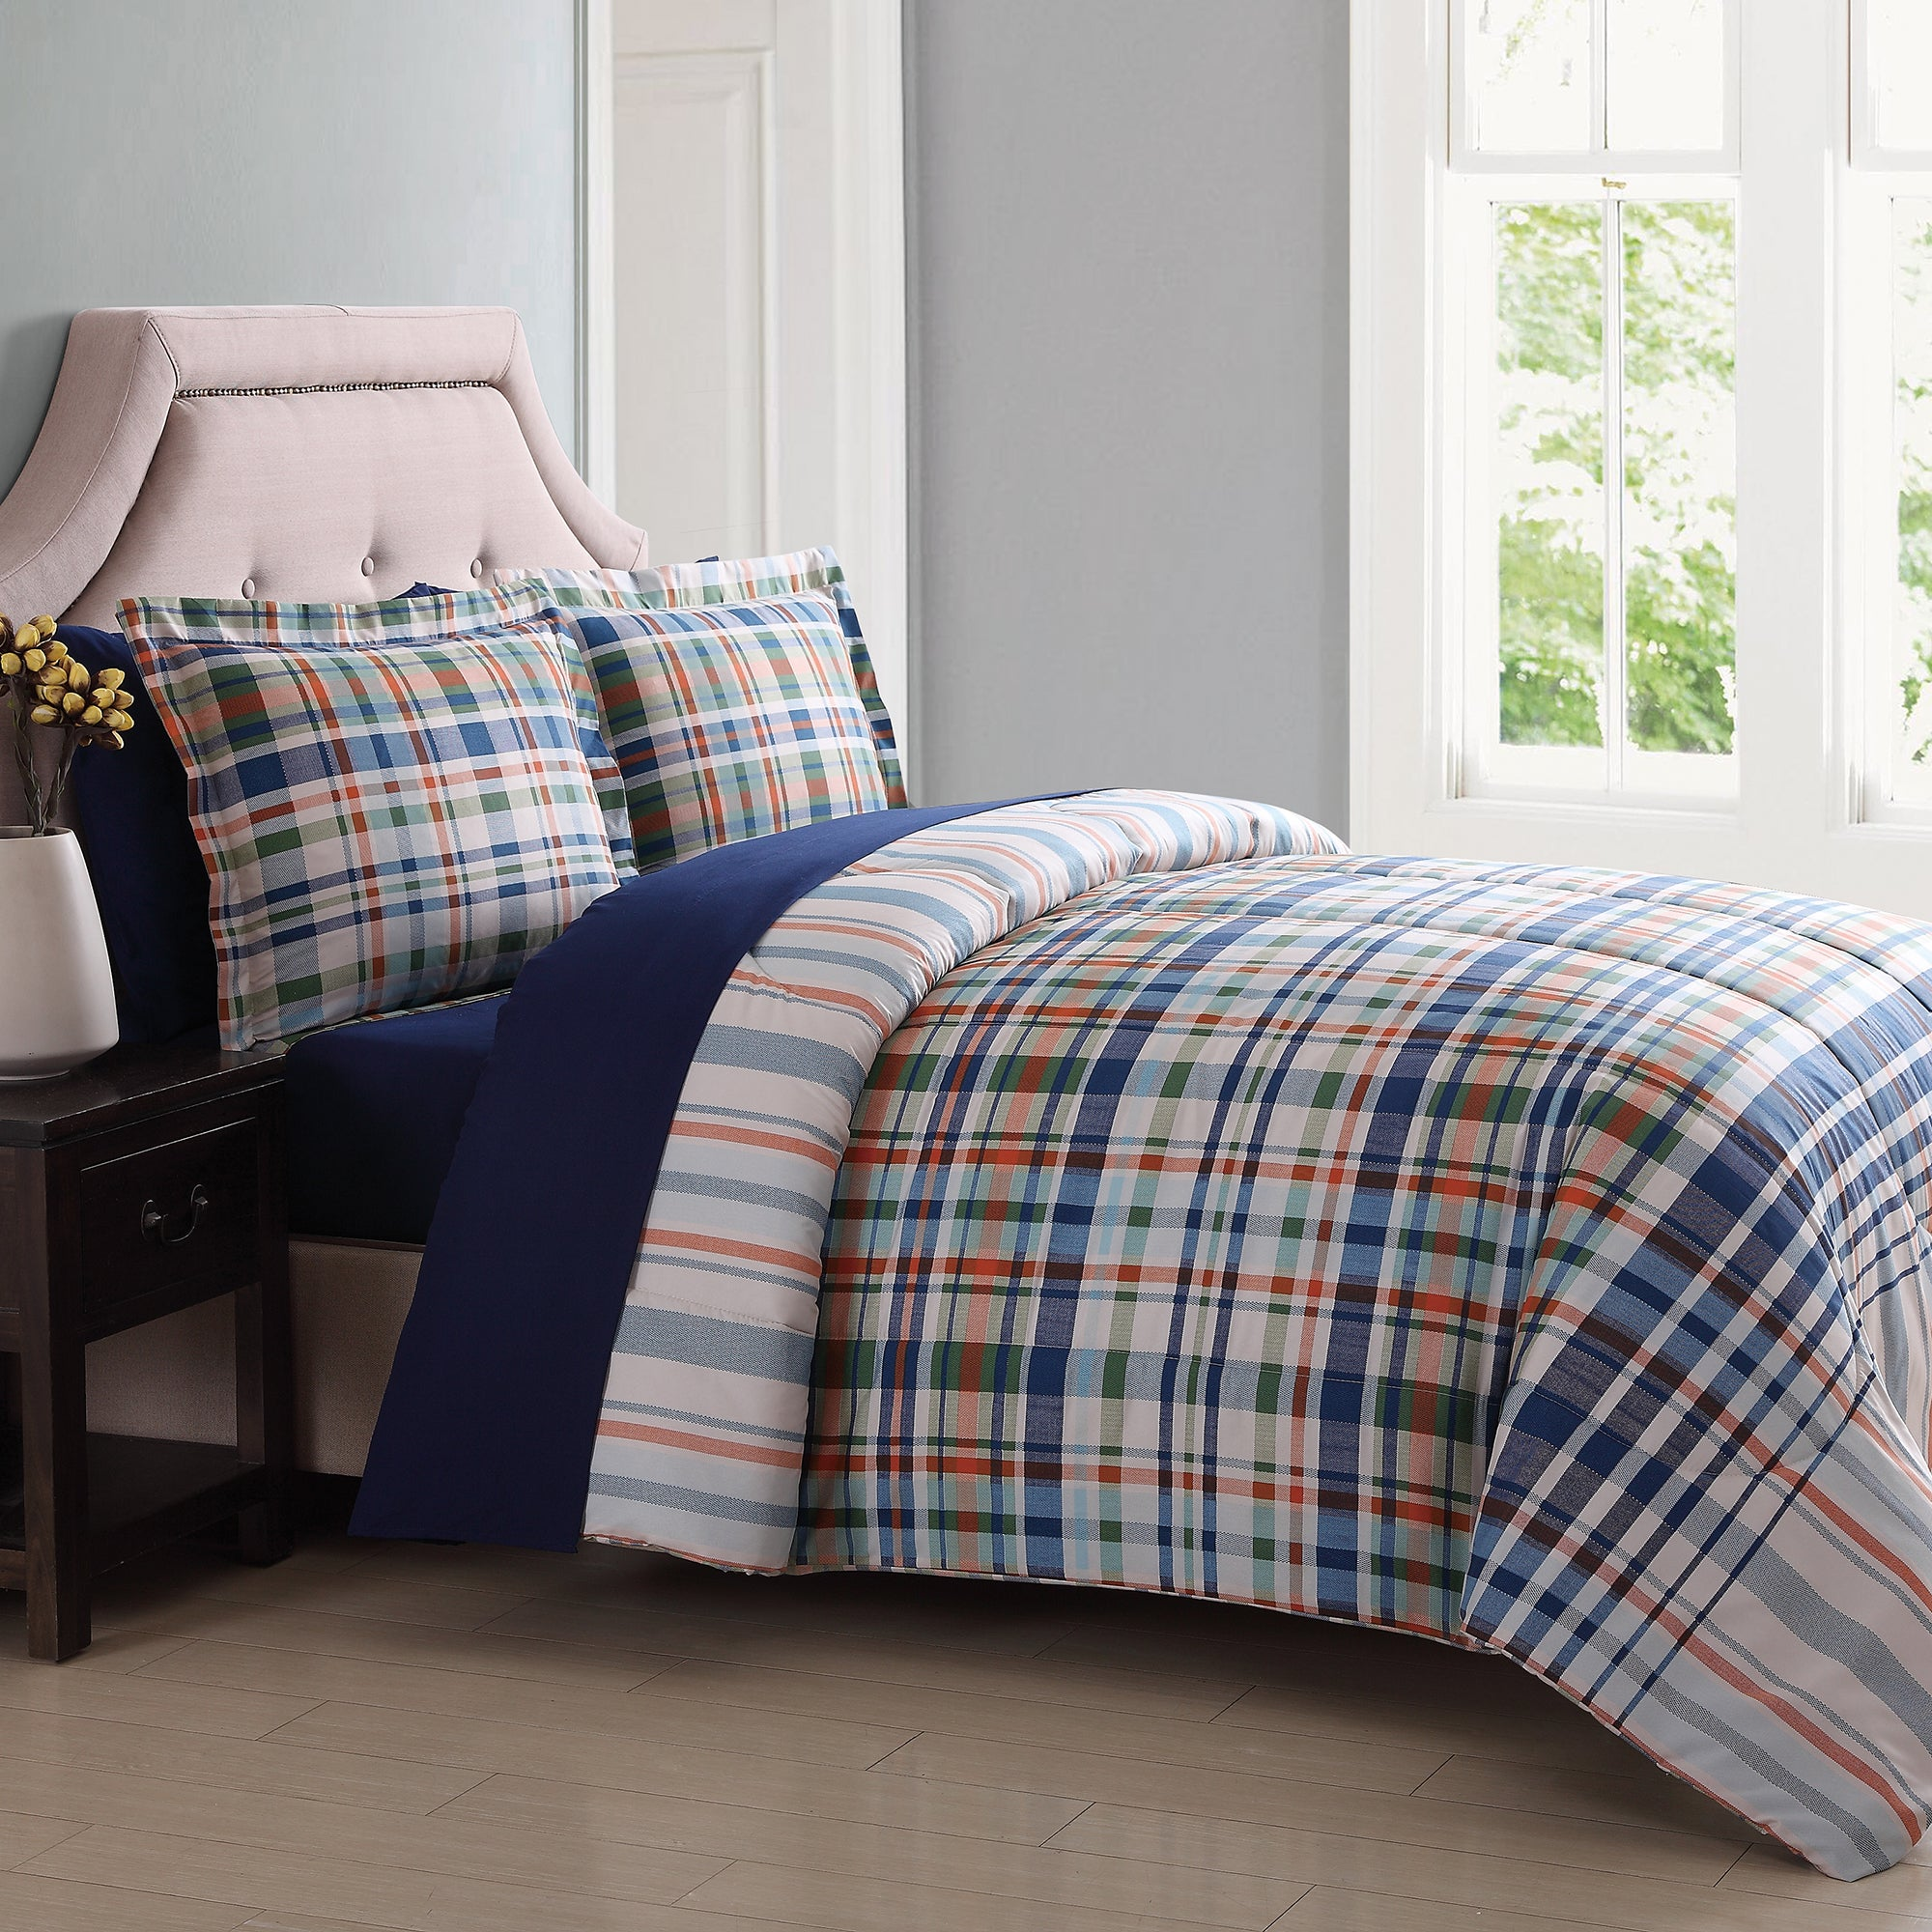 London Fog Cornwall Plaid 7 Piece Bed In a Bag Full/ Quee...